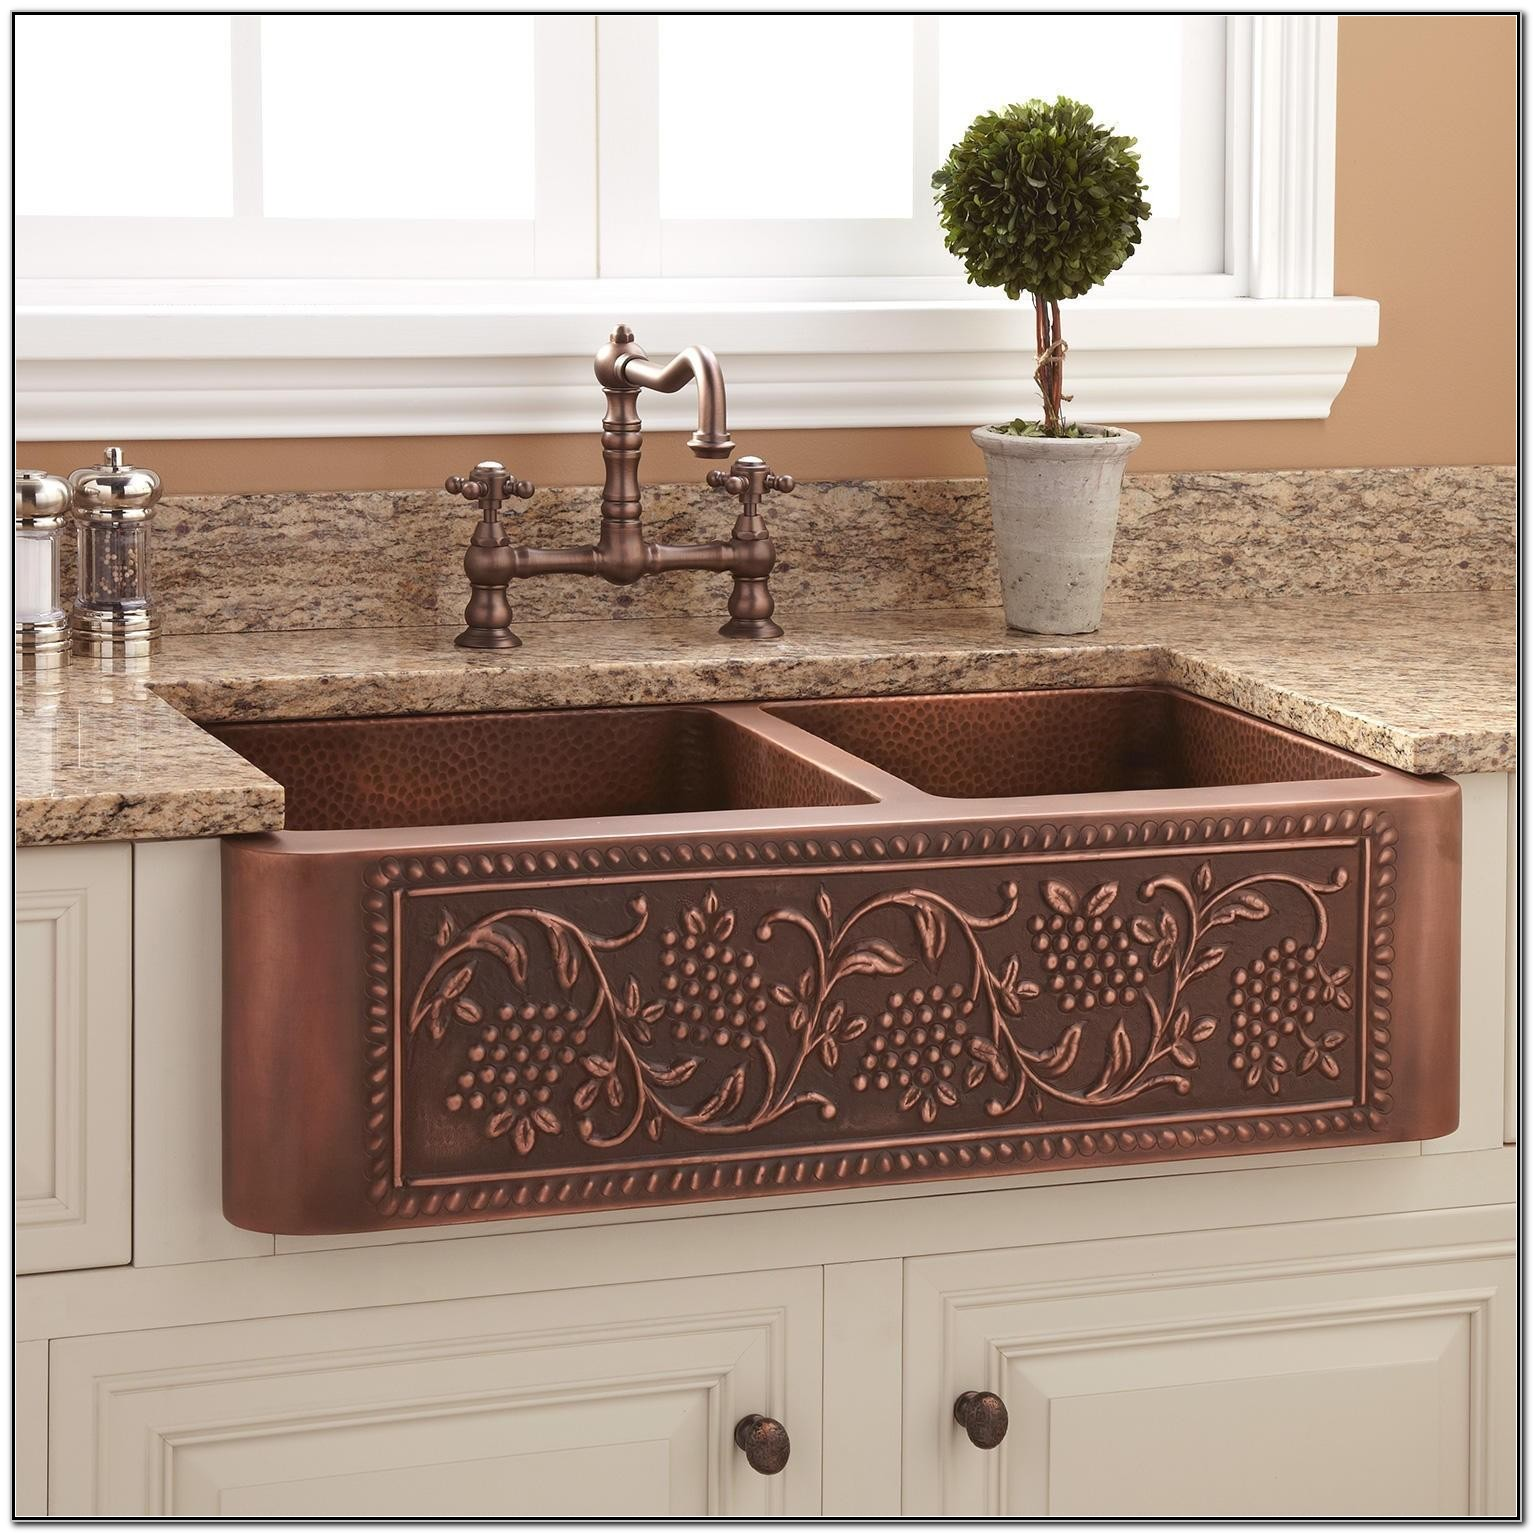 Kitchens With Copper Farmhouse Sinks